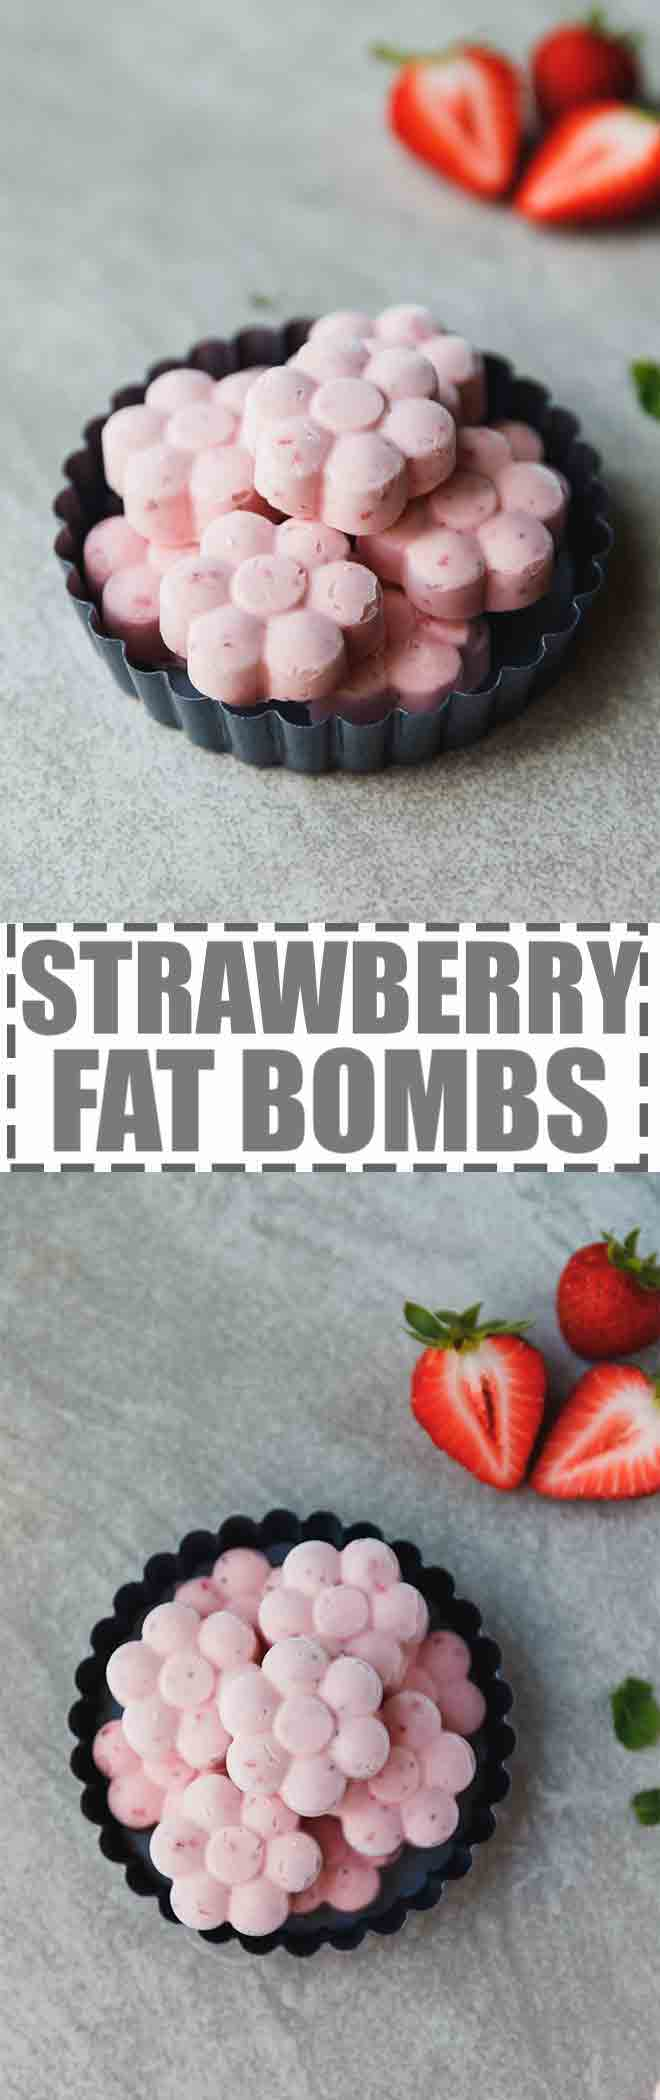 Low-Carb, Keto Strawberry Fat Bombs make the perfect, sweet, high fat snack. Loaded with fresh strawberries, cream cheese, butter and a little bit of Swerve sweetener, these snacks are easy to make and keep well in the fridge for up to one month.